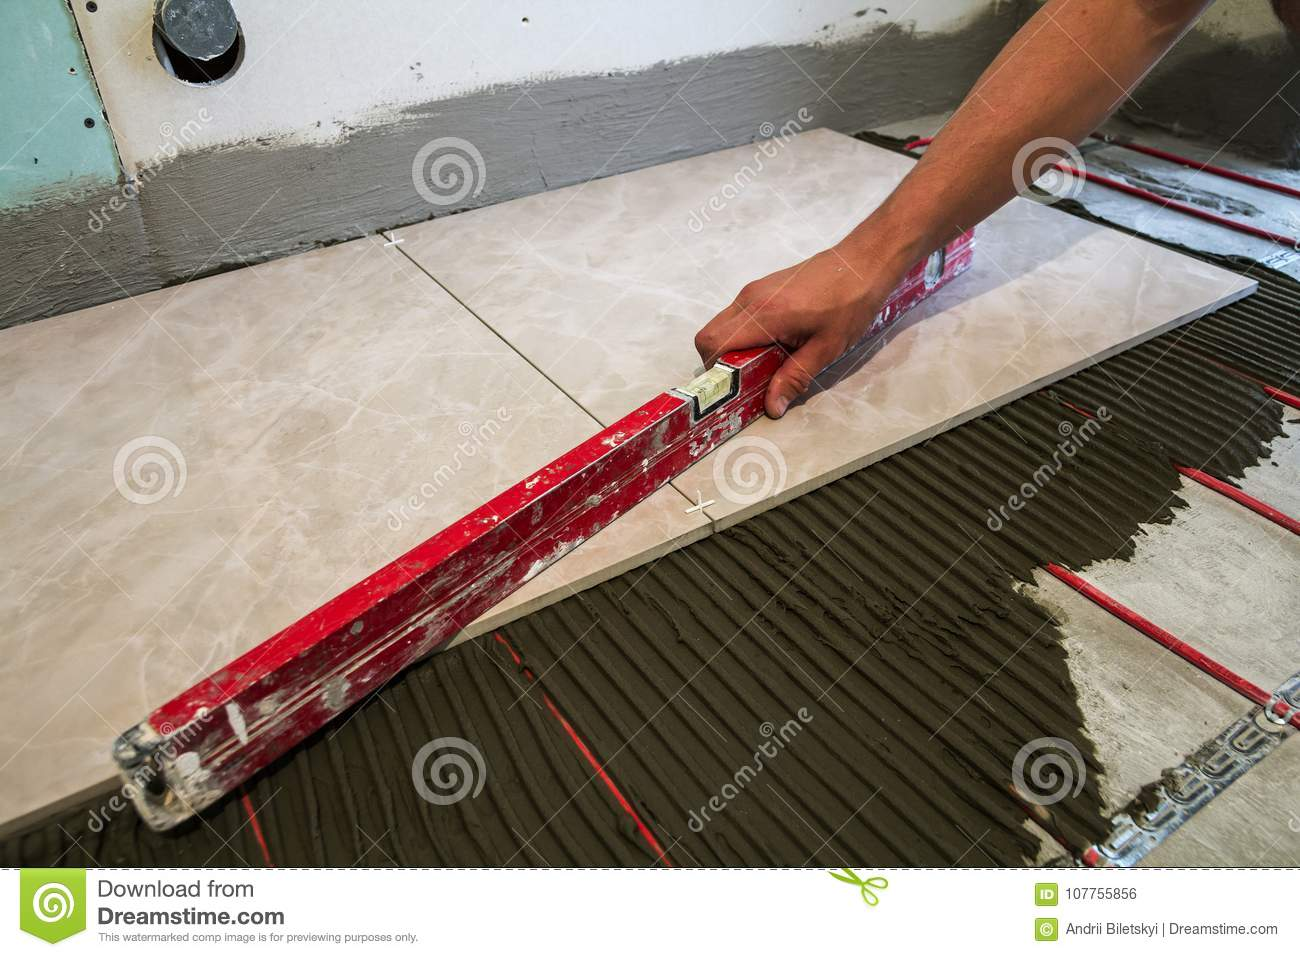 Ceramic tiles and tools for tiler worker hand installing floor ceramic tiles and tools for tiler worker hand installing floor mason black royalty free stock photo download ceramic tiles and tools dailygadgetfo Image collections